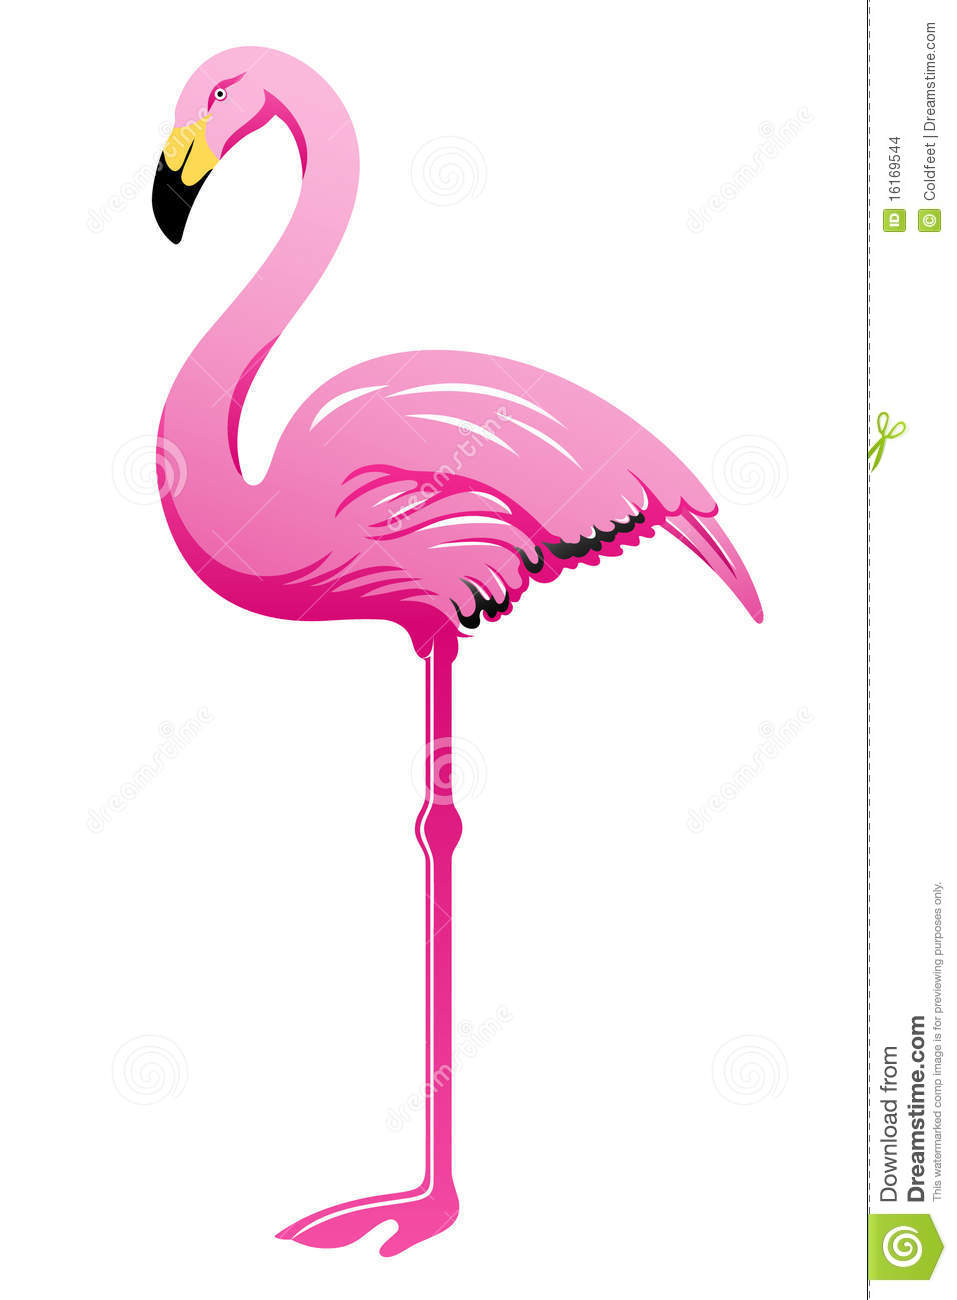 de roze flamingo dating Complaint, review matchmaking fraud with valenti international who will only aurora valenti tompkins county clerk mass signing of false judgments cost me jessica valenti steven w thrasher if you think dating is hard the easiest way to reduce your dating costs is to treat the process strategically not as.